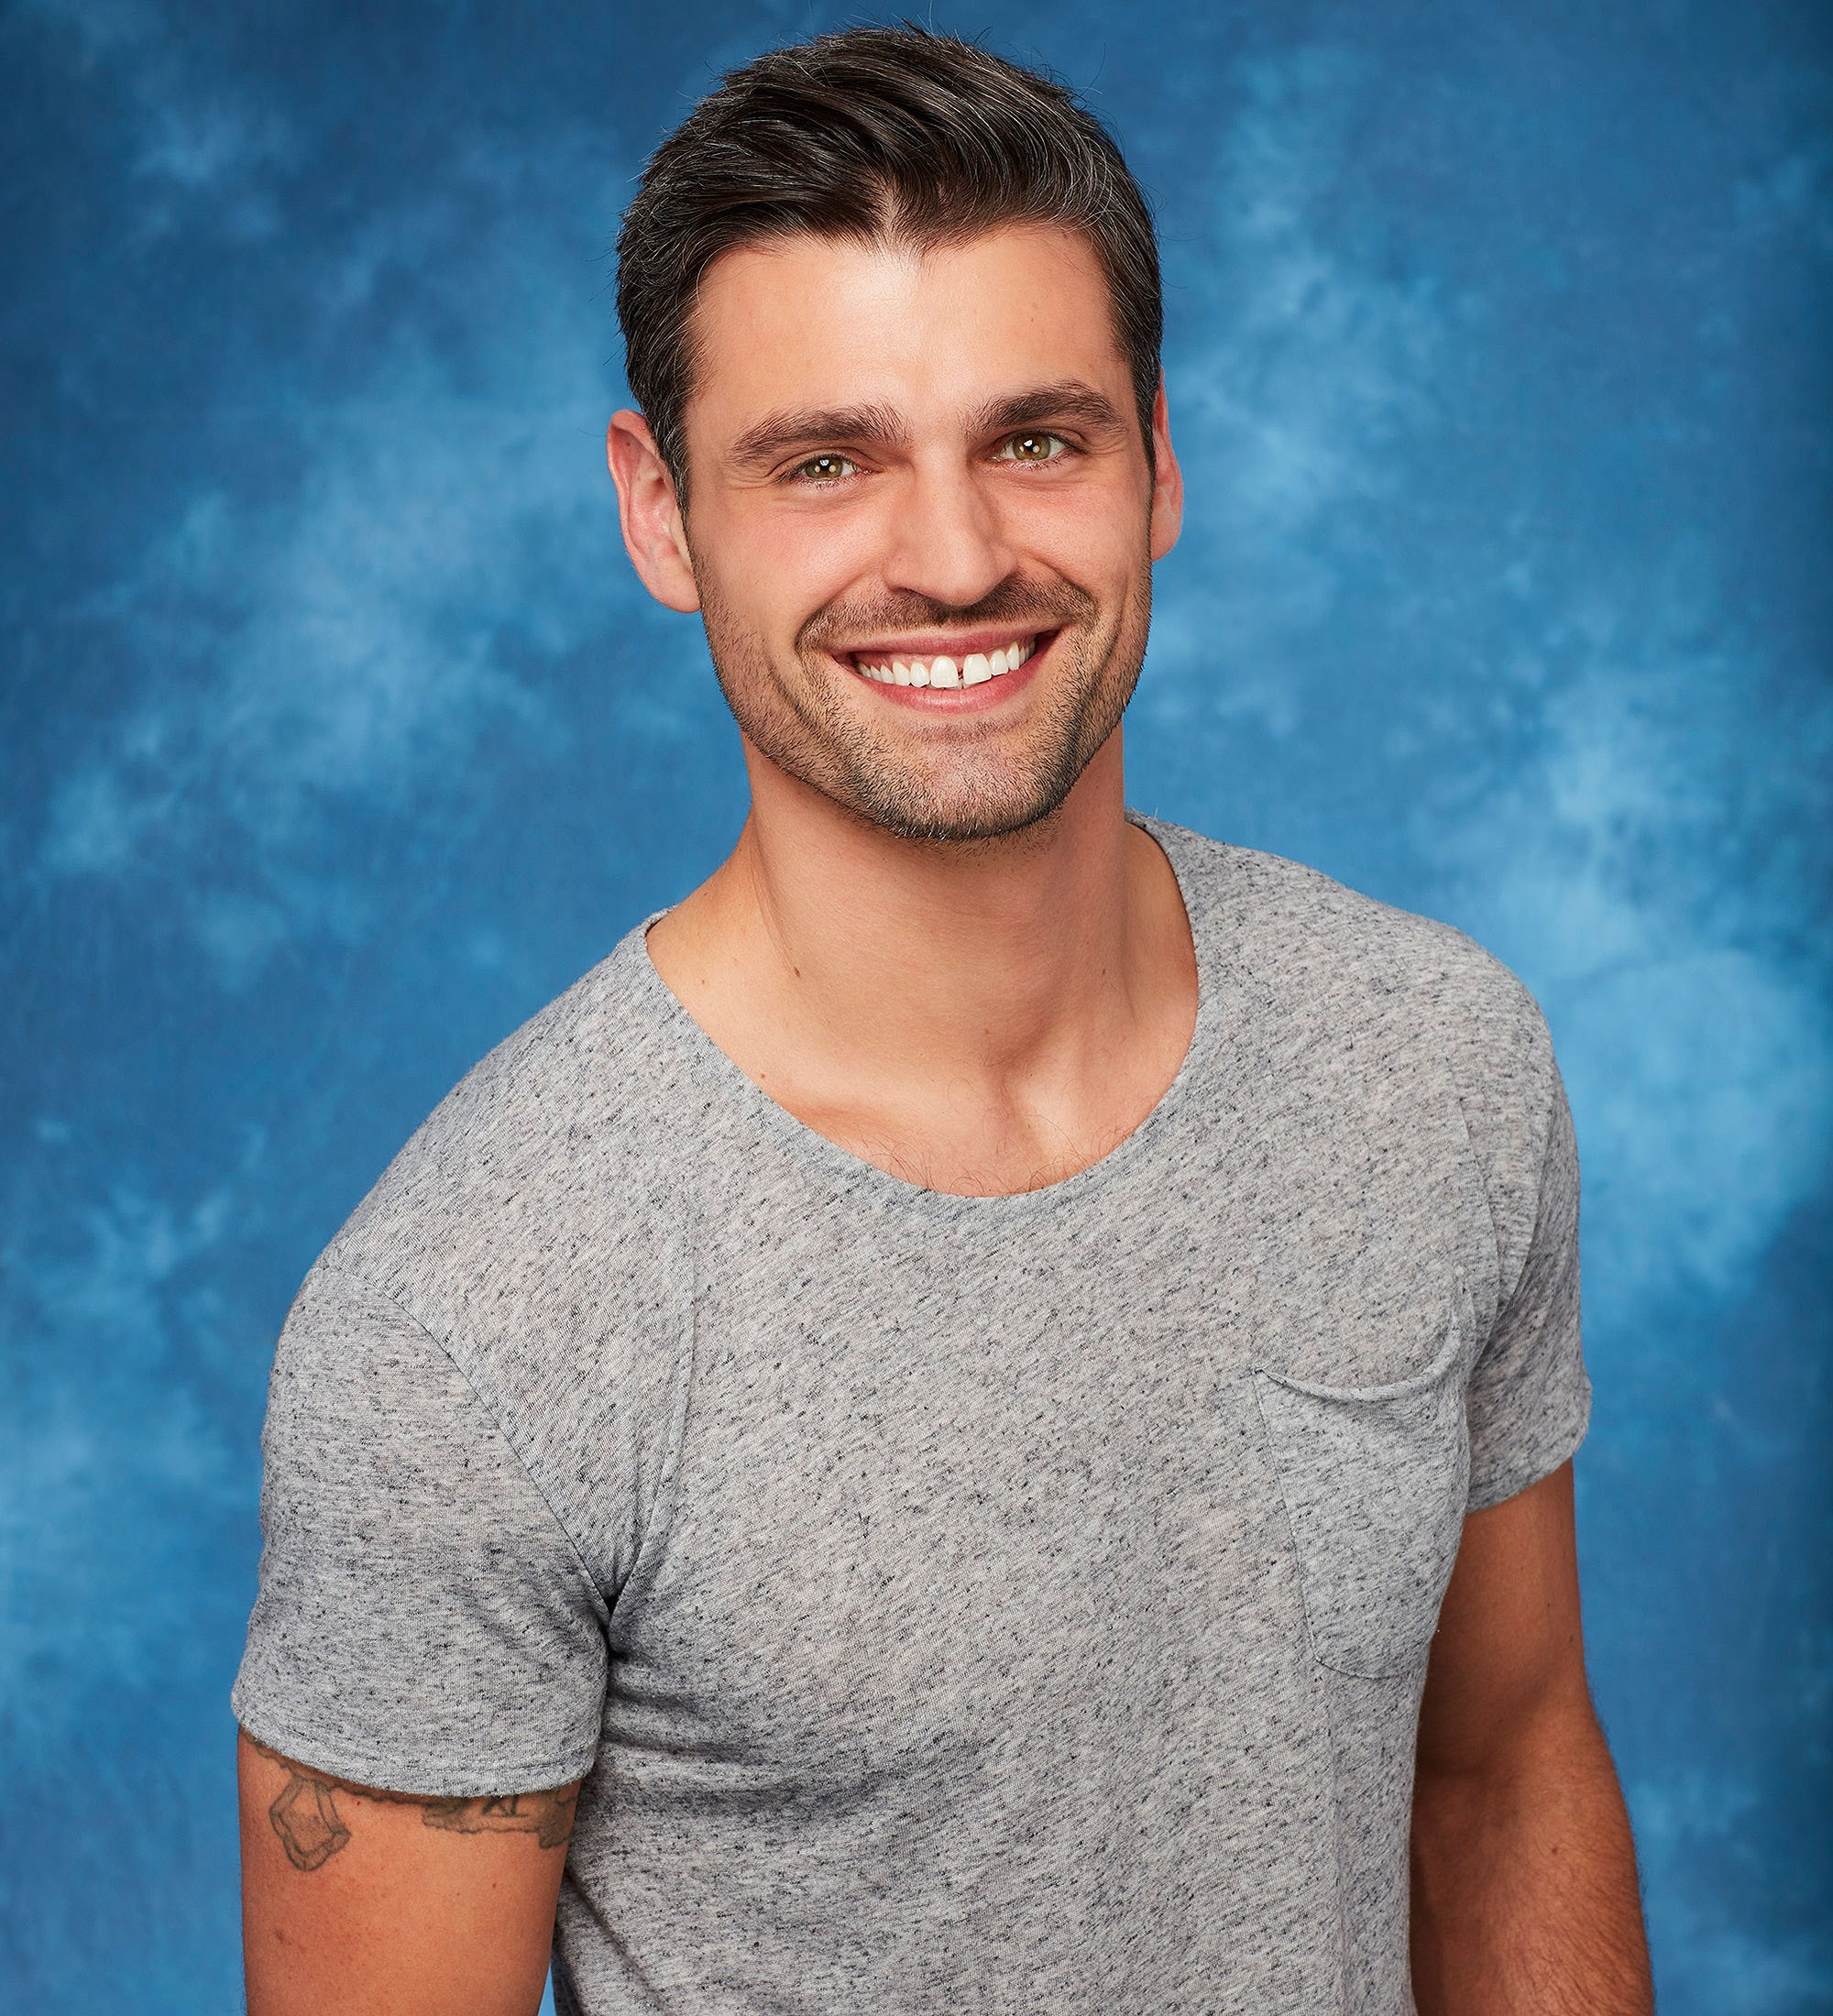 Miami man wins The Bachelorette's heart